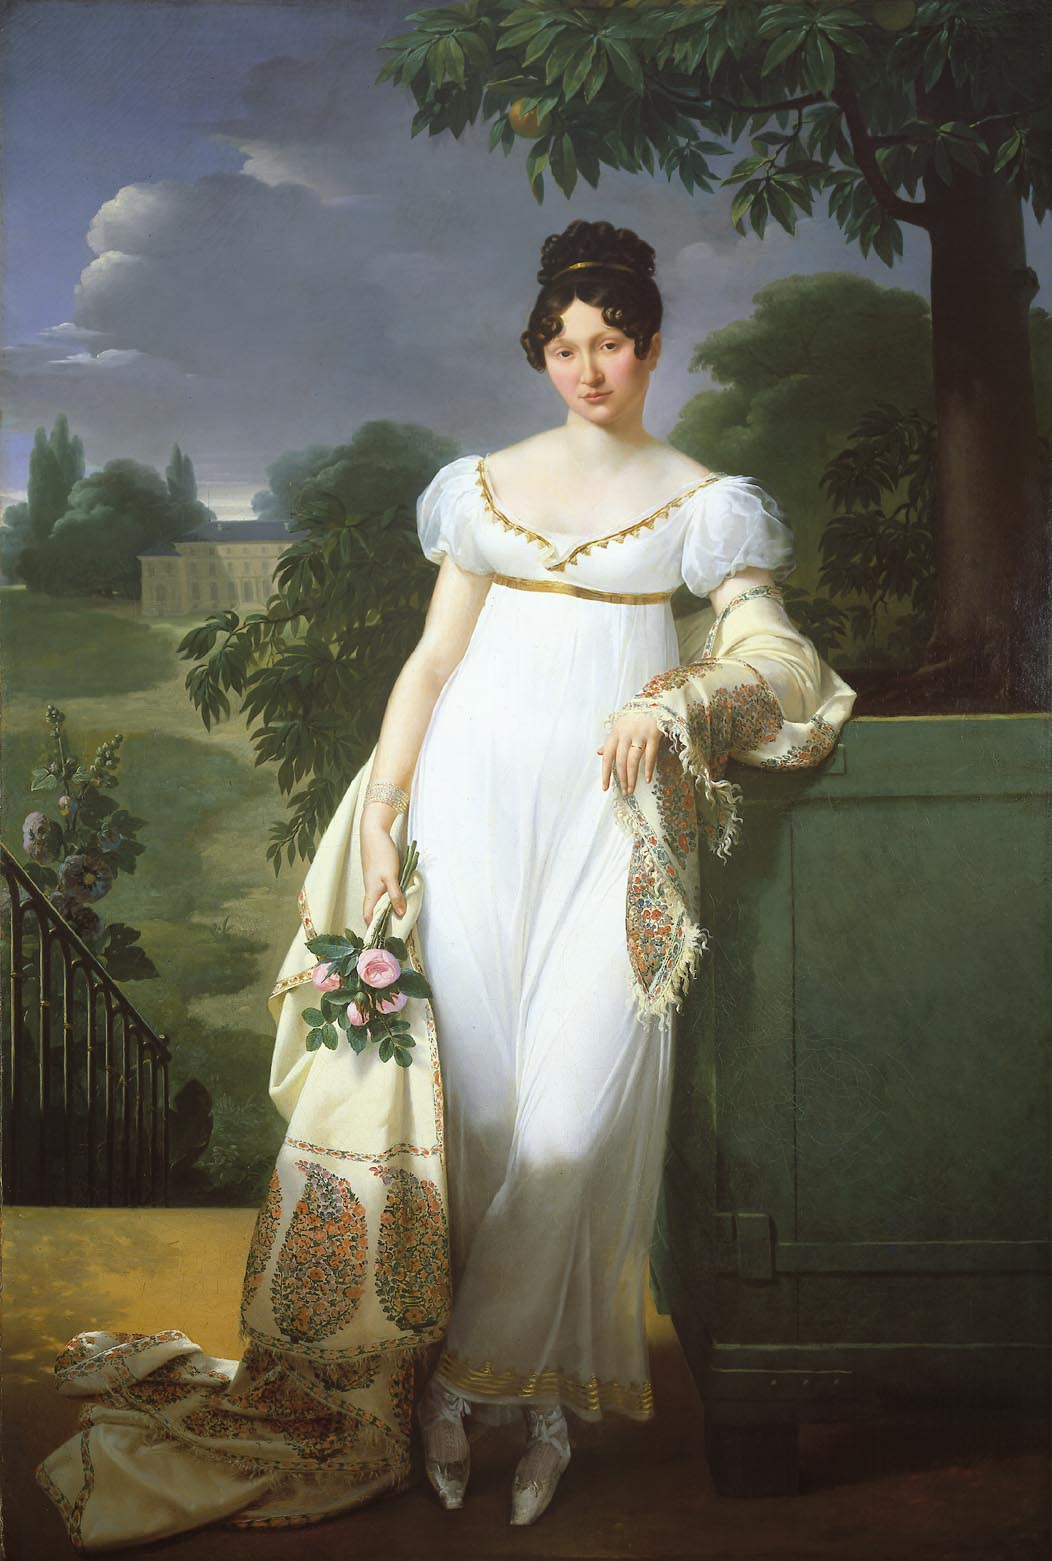 French lady in 1808. The style was often accompanied by a shawl or similar wrap, or a short 'Spencer' jacket, as the dresses were light and left much uncovered.